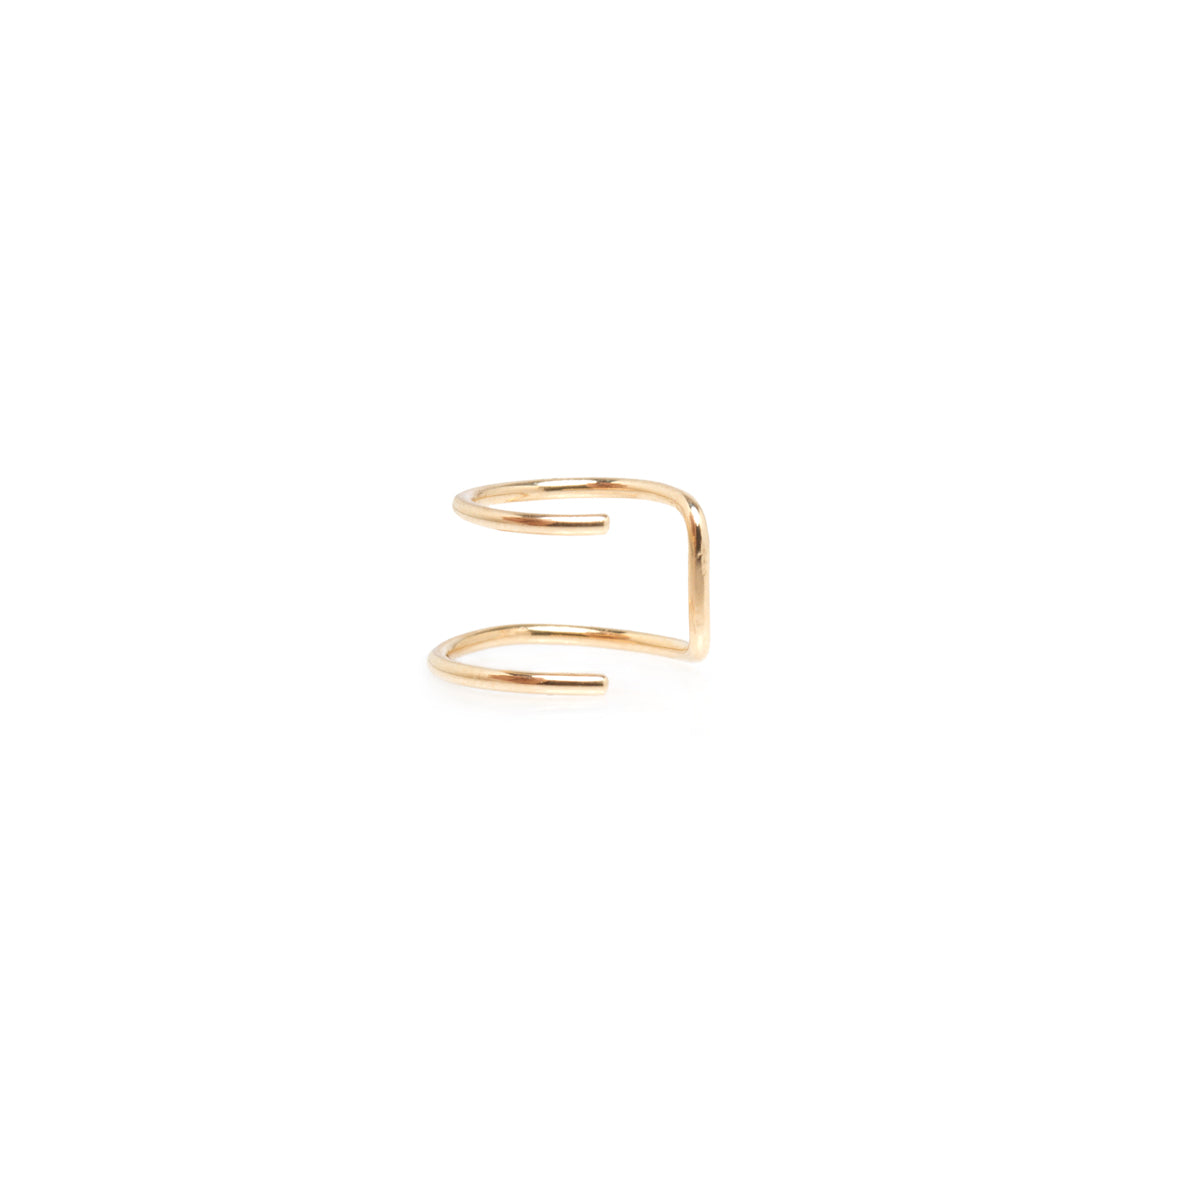 Zoë Chicco 14kt Yellow Gold Double Ear Cuff